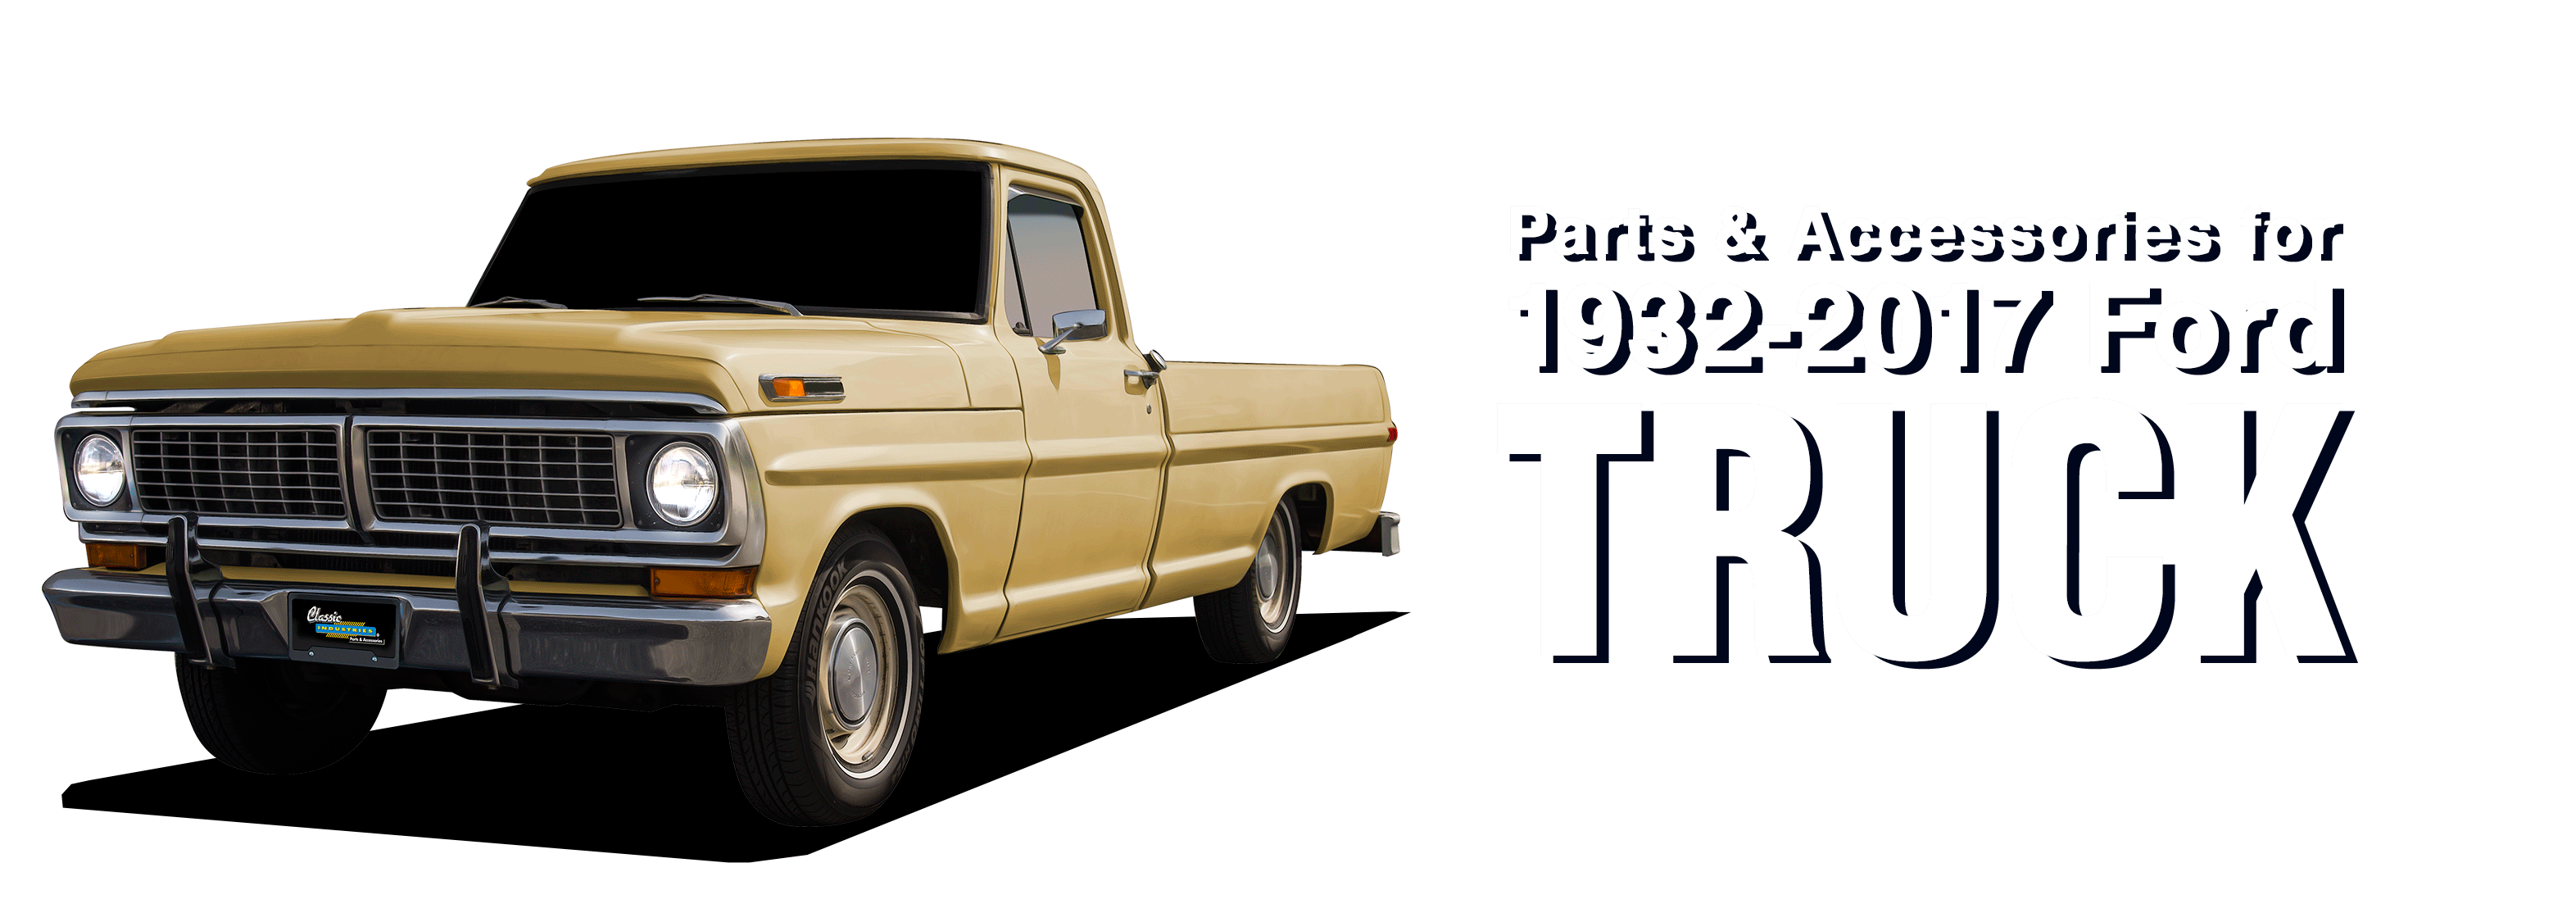 1932-2017 Ford Truck